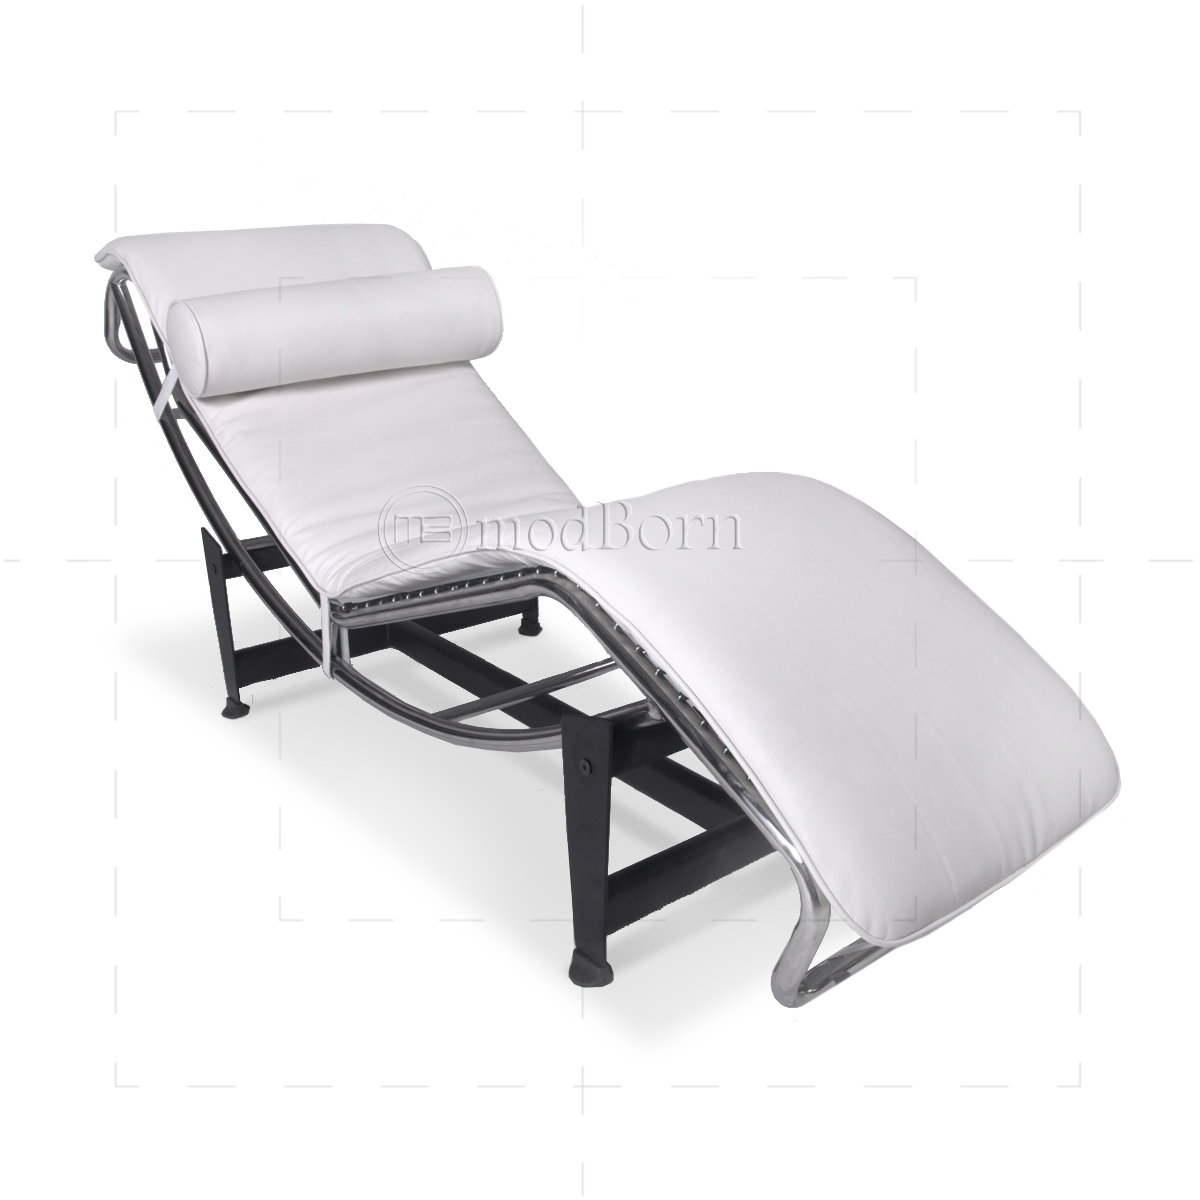 Le corbusier style lc4 chaise longue white leather for Chaise corbusier